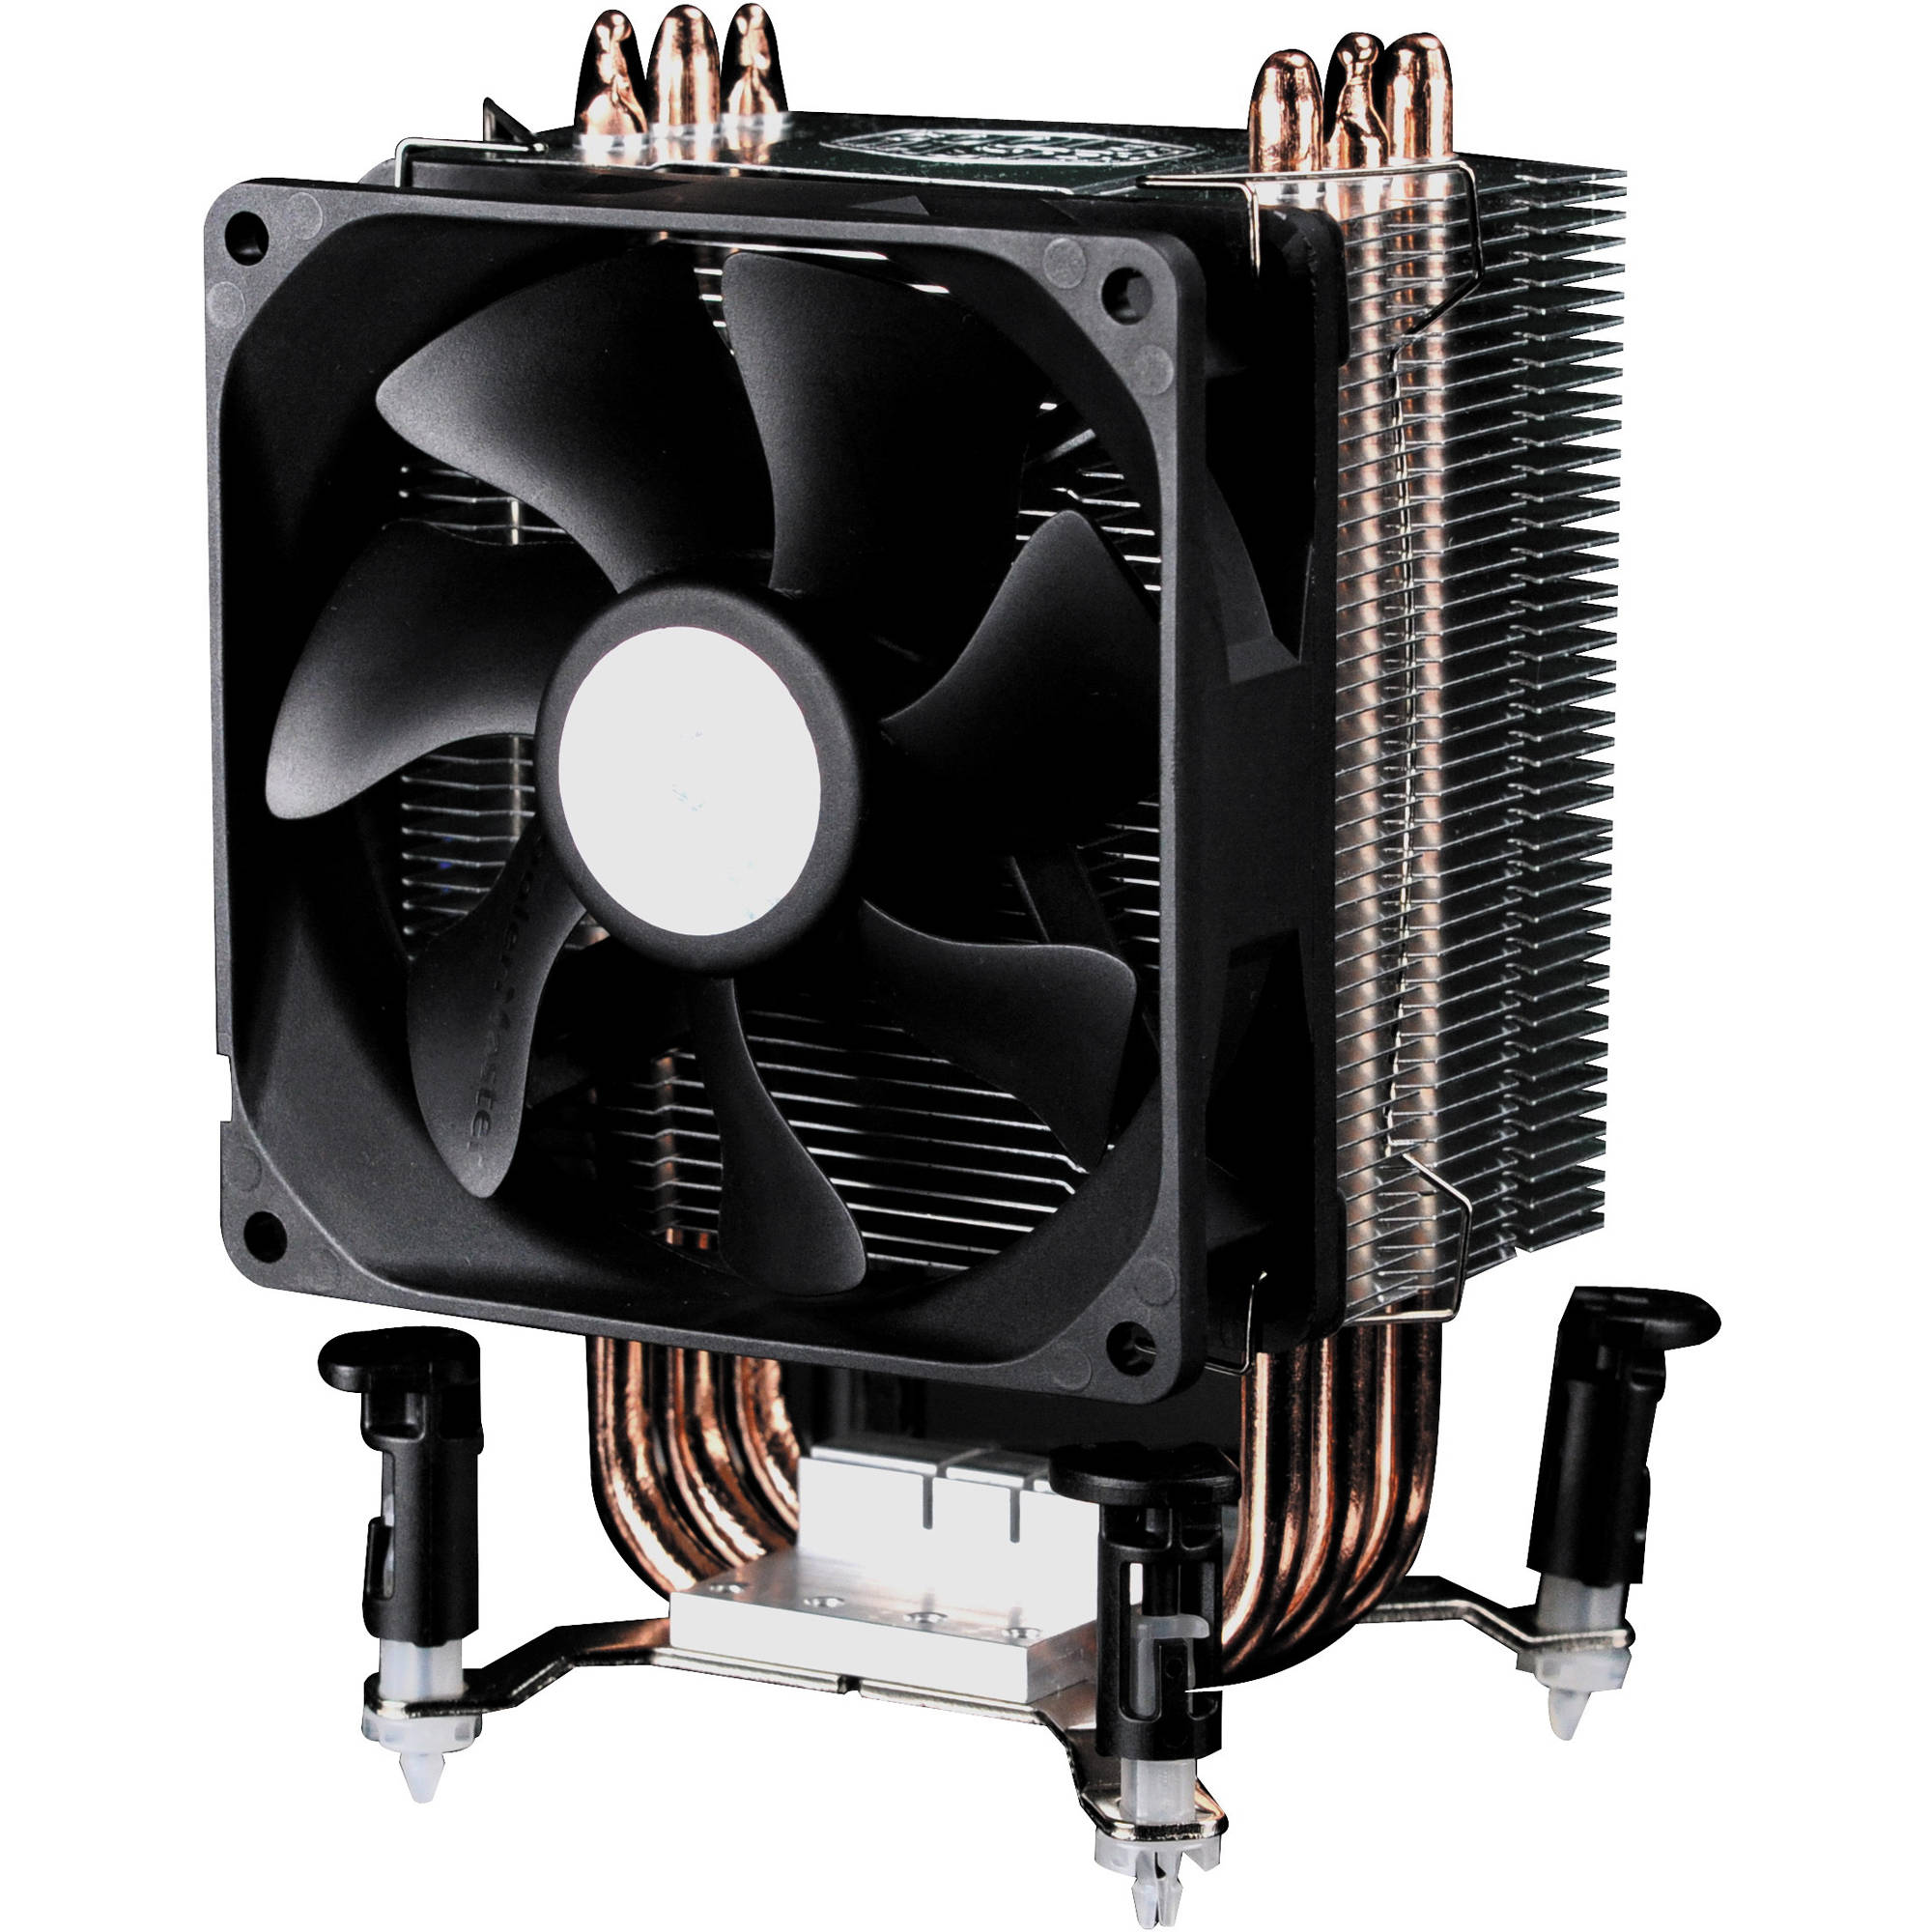 Cooler Master Hyper TX3 Cooling Fan RR 910 HTX3 G1 B&H Photo #895D42